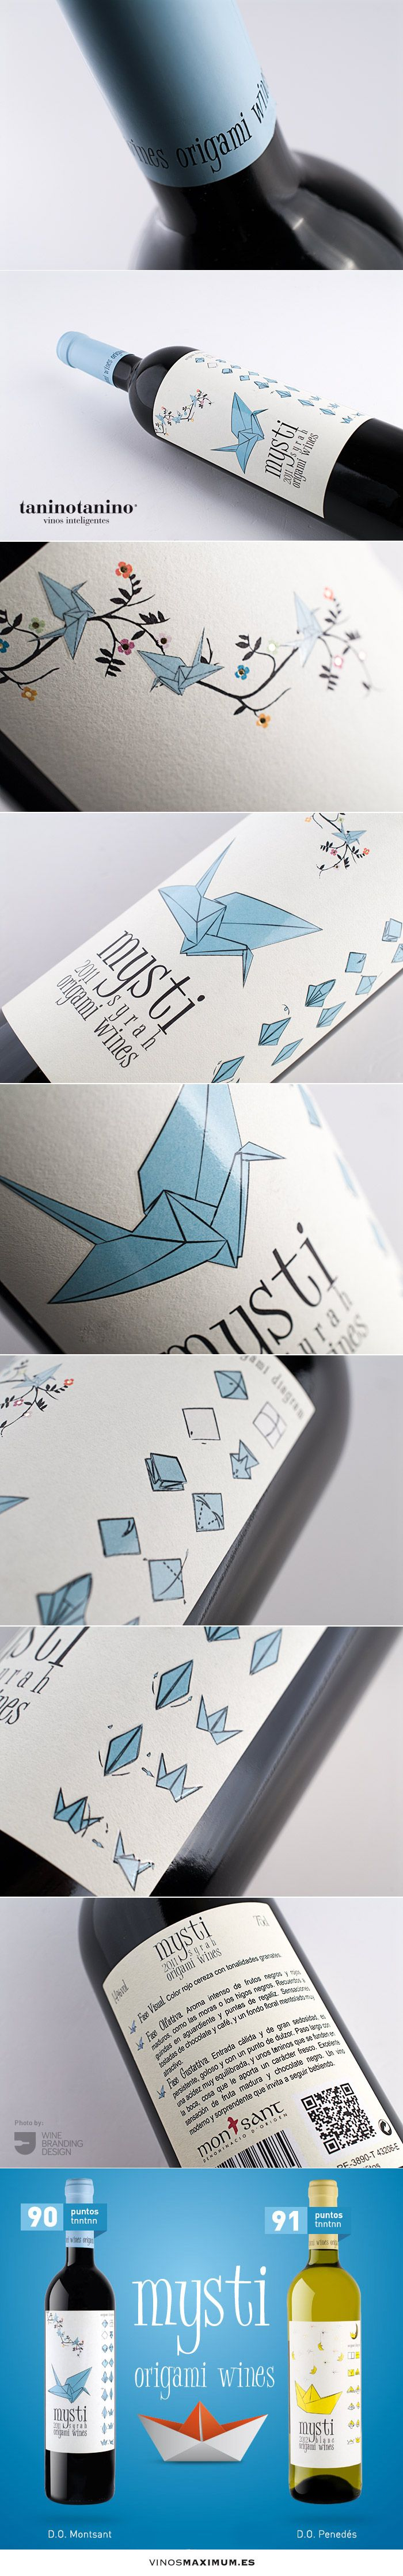 origami wines mysti - TANINOTANINO VINOS INTELIGENTES - VINOS MAXIMUM #wine #packaging #design